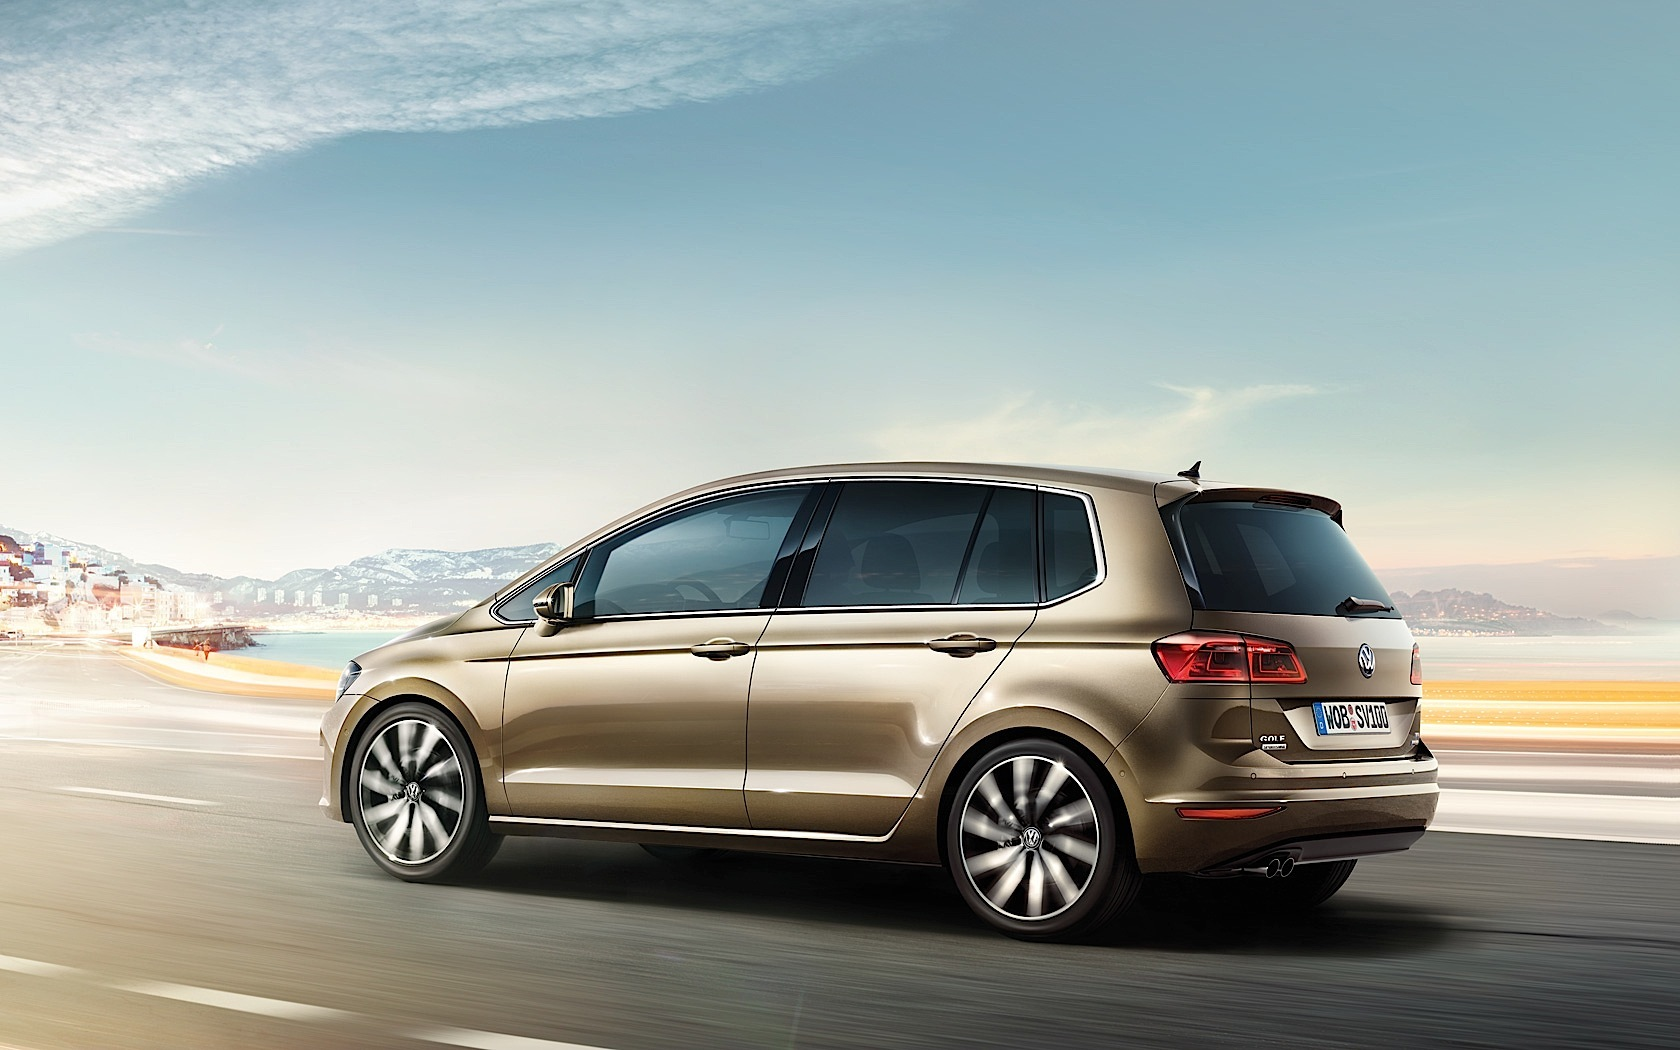 volkswagen golf sportsvan specs photos 2014 2015 2016 2017 autoevolution. Black Bedroom Furniture Sets. Home Design Ideas